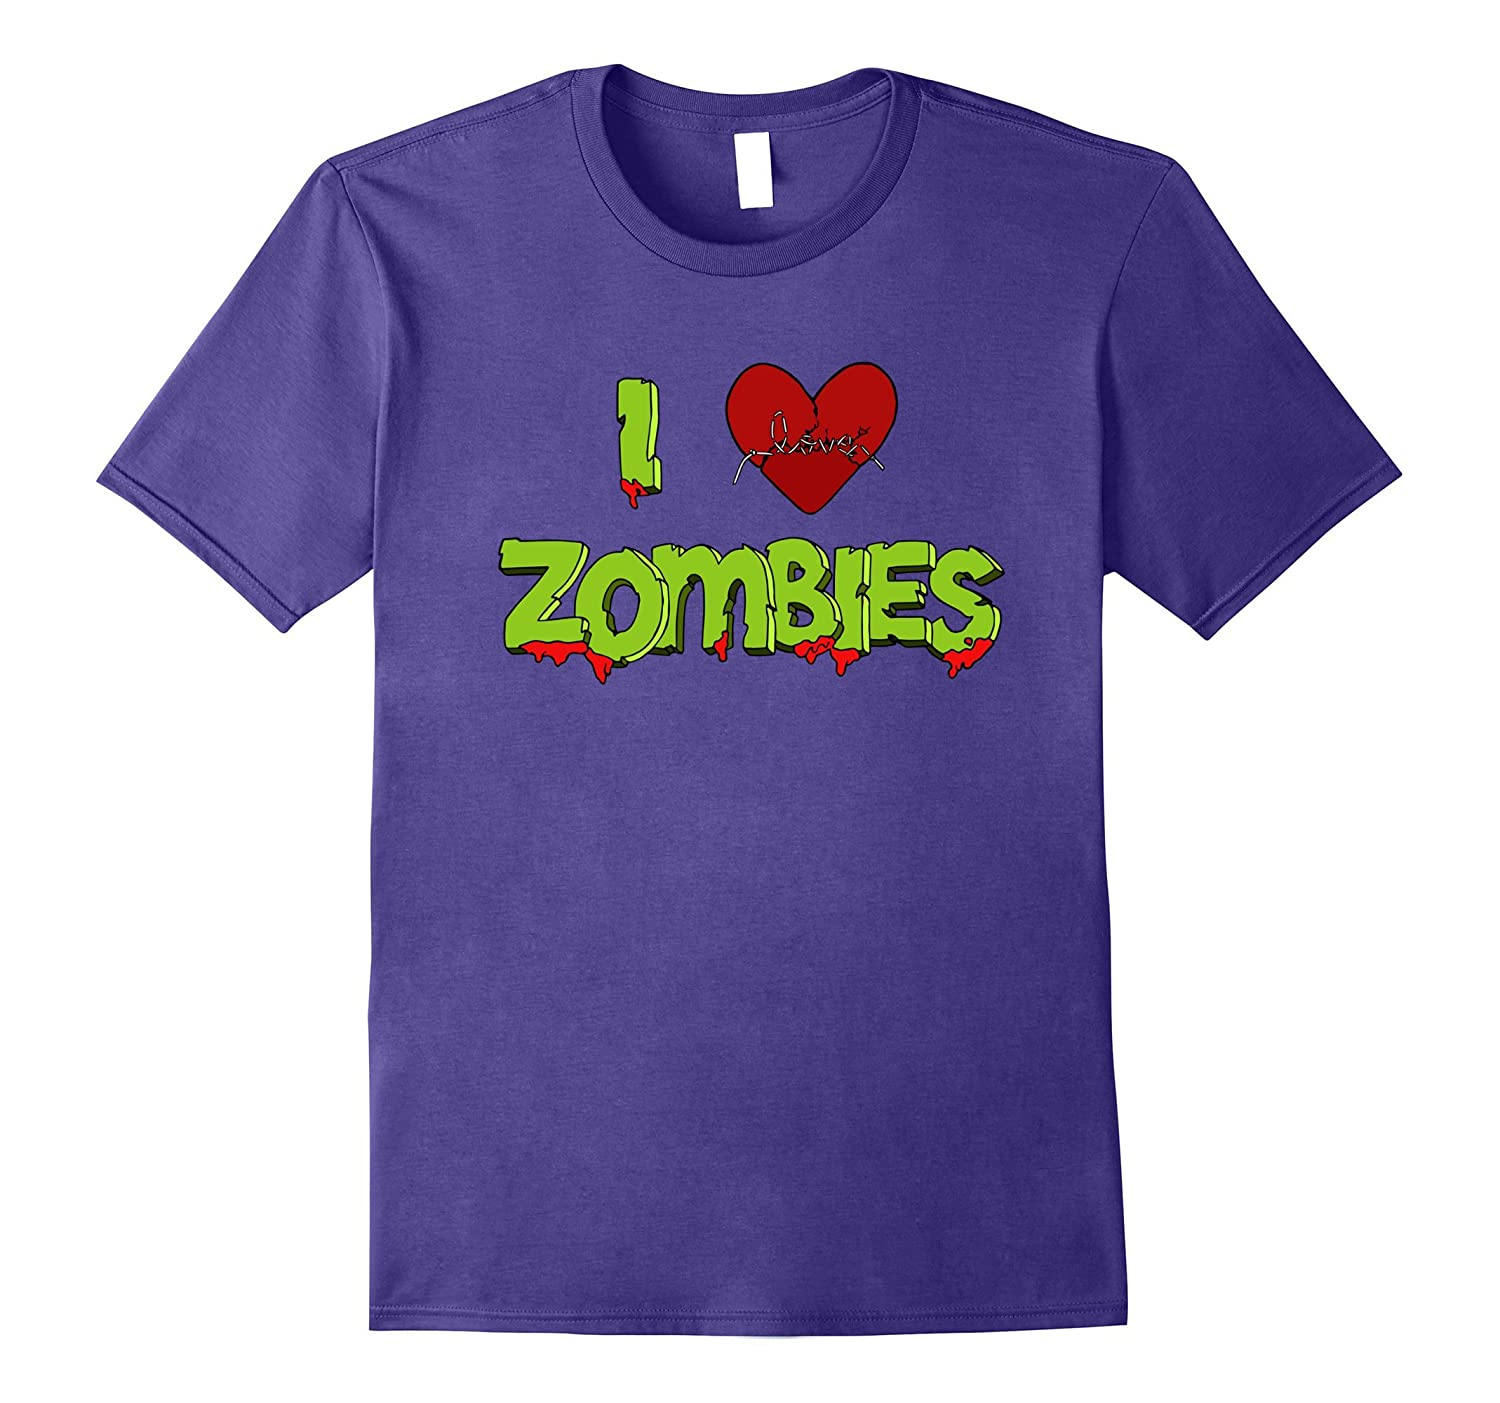 ON SALE - Funny Horror Shirt - I Love Zombies-FL